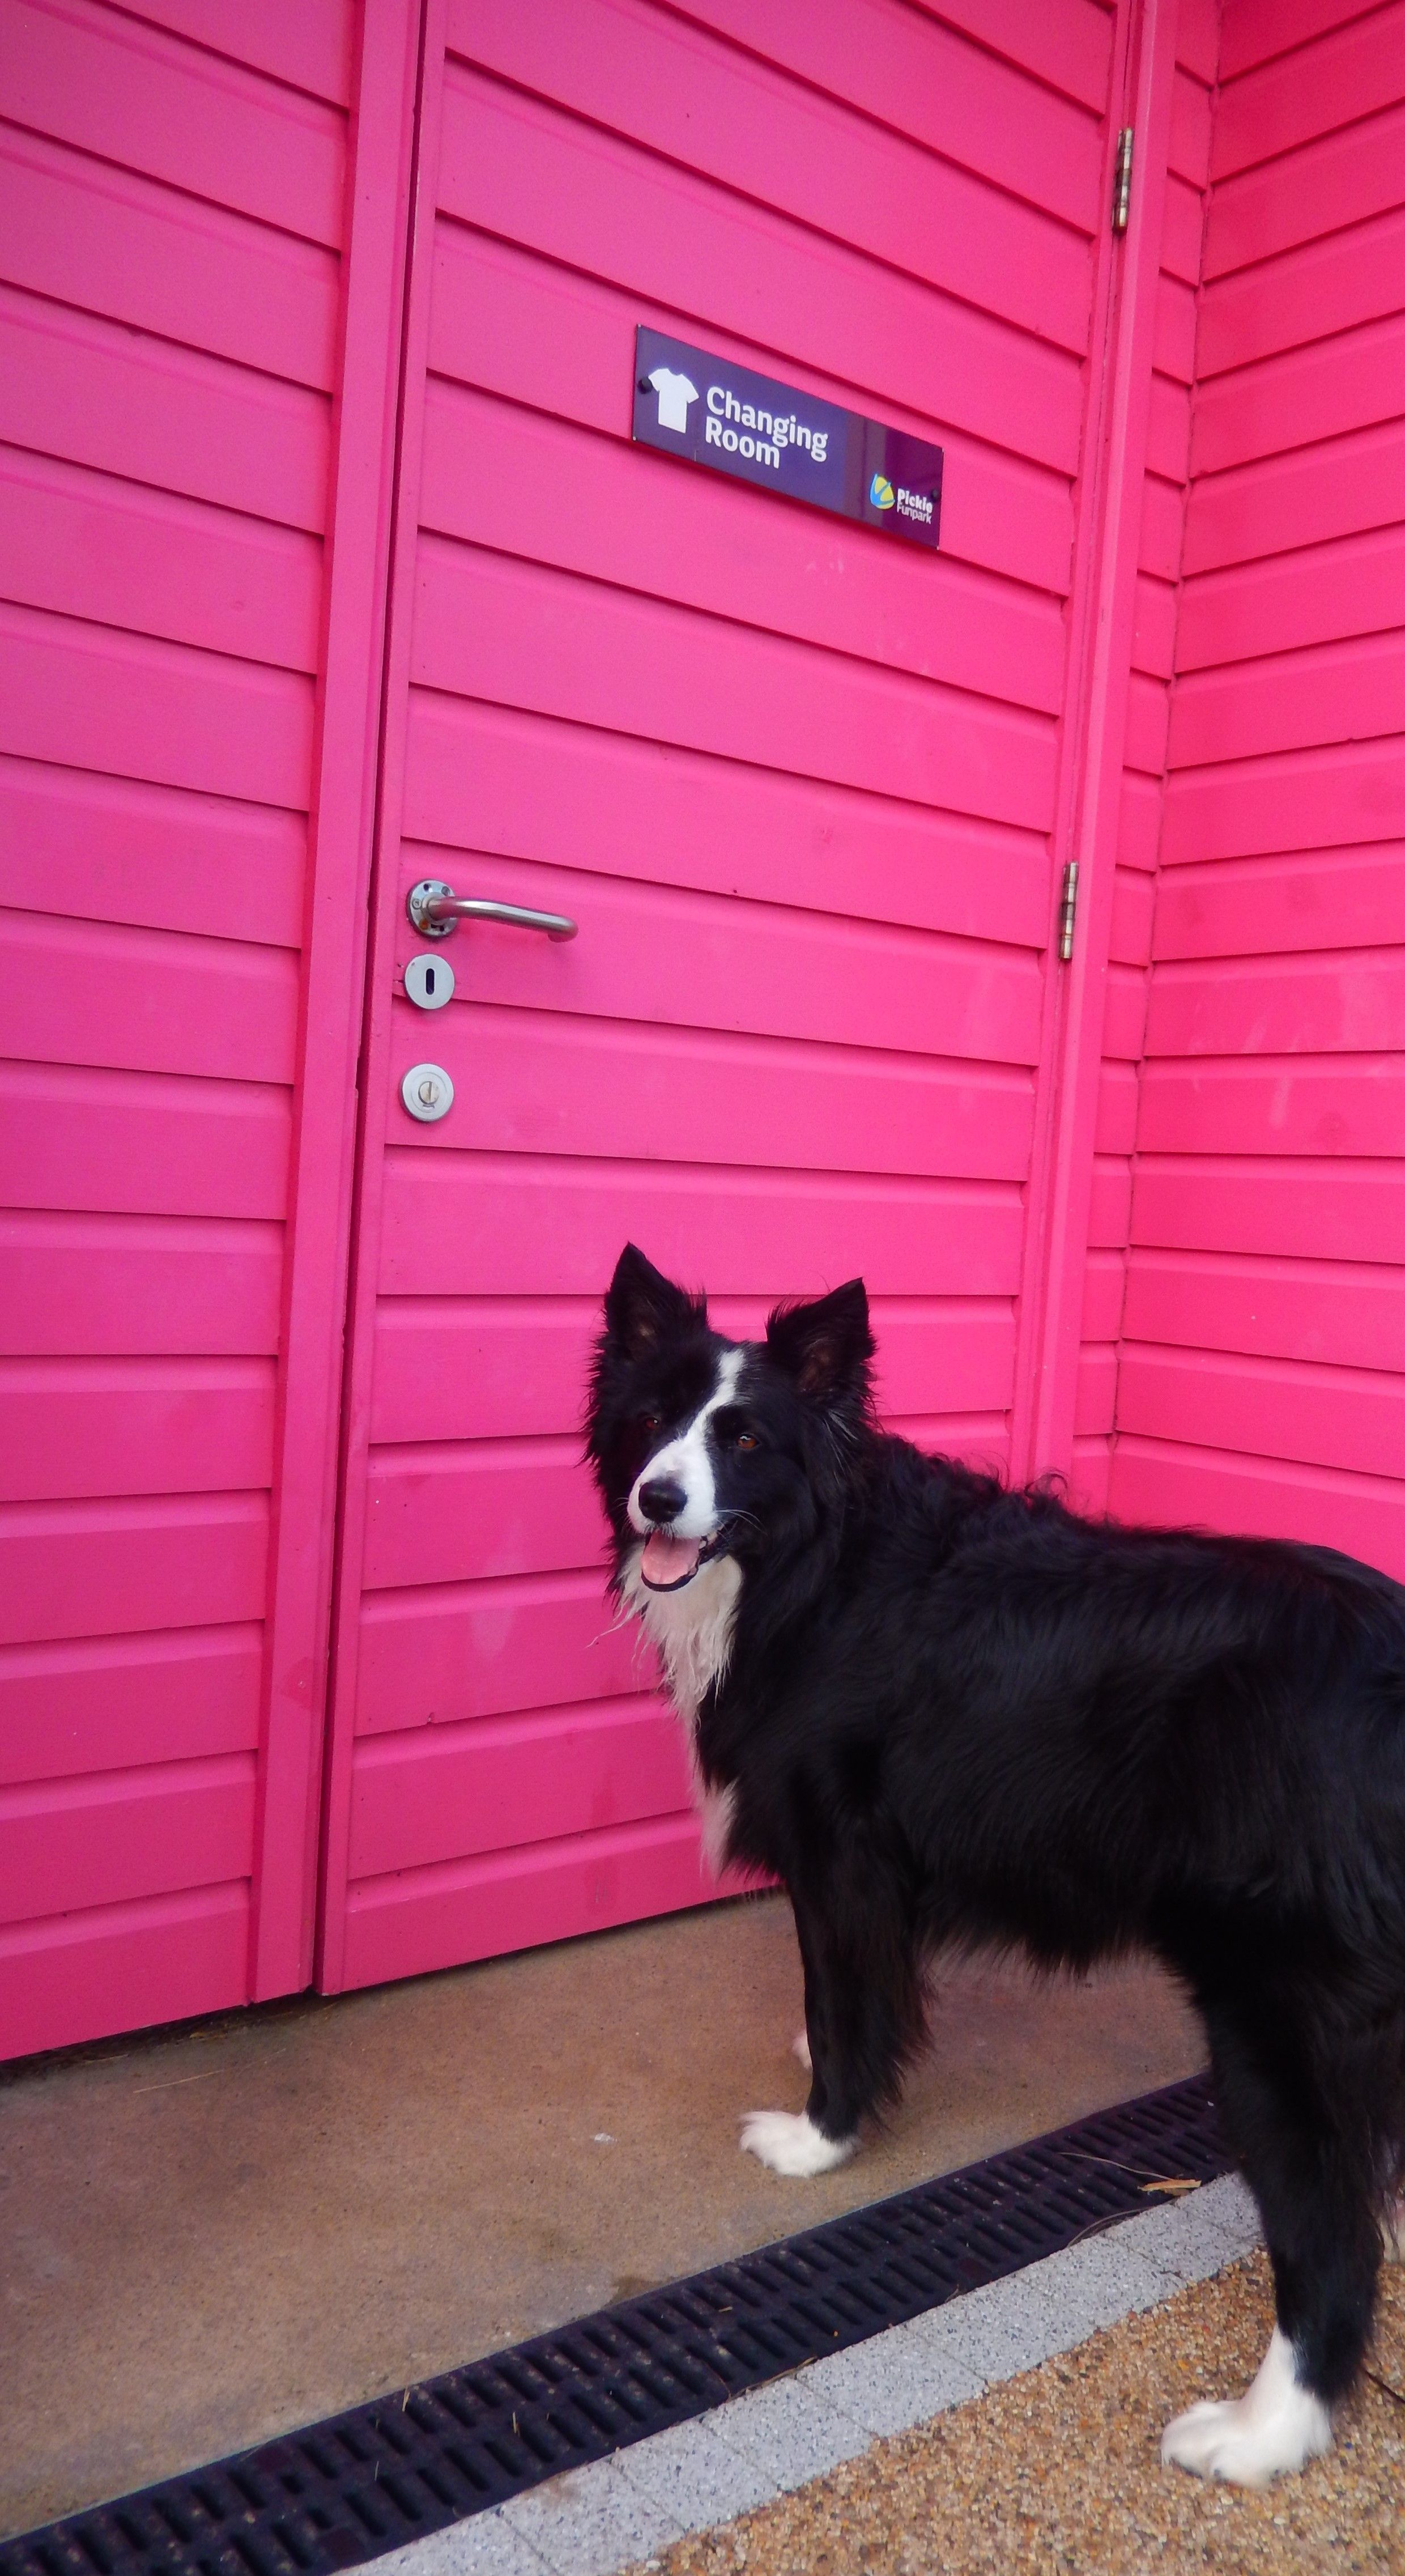 Connie Hope This Is The Right One Now For Us Girls To Use I Don T Want To Be In The Dog House Again By Going Into The Boy S Chan Collie Collie Dog Border